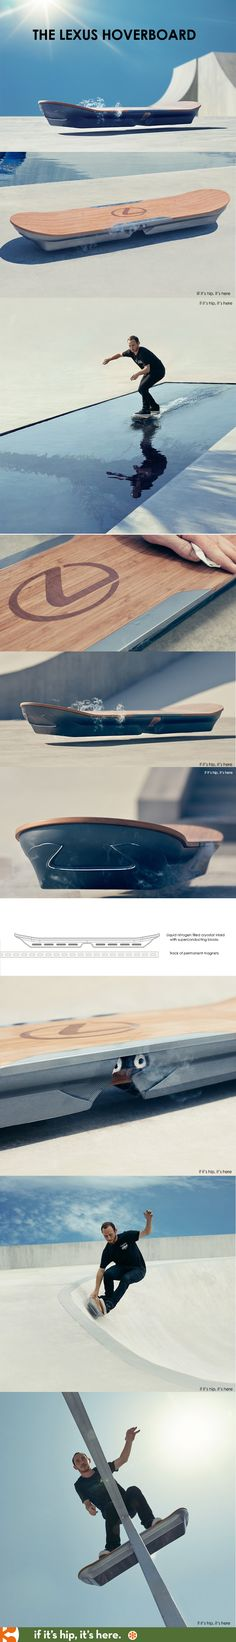 is Content Filtering? The Lexus Hoverboard, they may have had metal under Hill Valley. They just never told you.The Lexus Hoverboard, they may have had metal under Hill Valley. They just never told you. Futuristic Technology, Technology Gadgets, Science And Technology, Medical Technology, Energy Technology, Gadgets And Gizmos, Tech Gadgets, Travel Gadgets, Cool Inventions